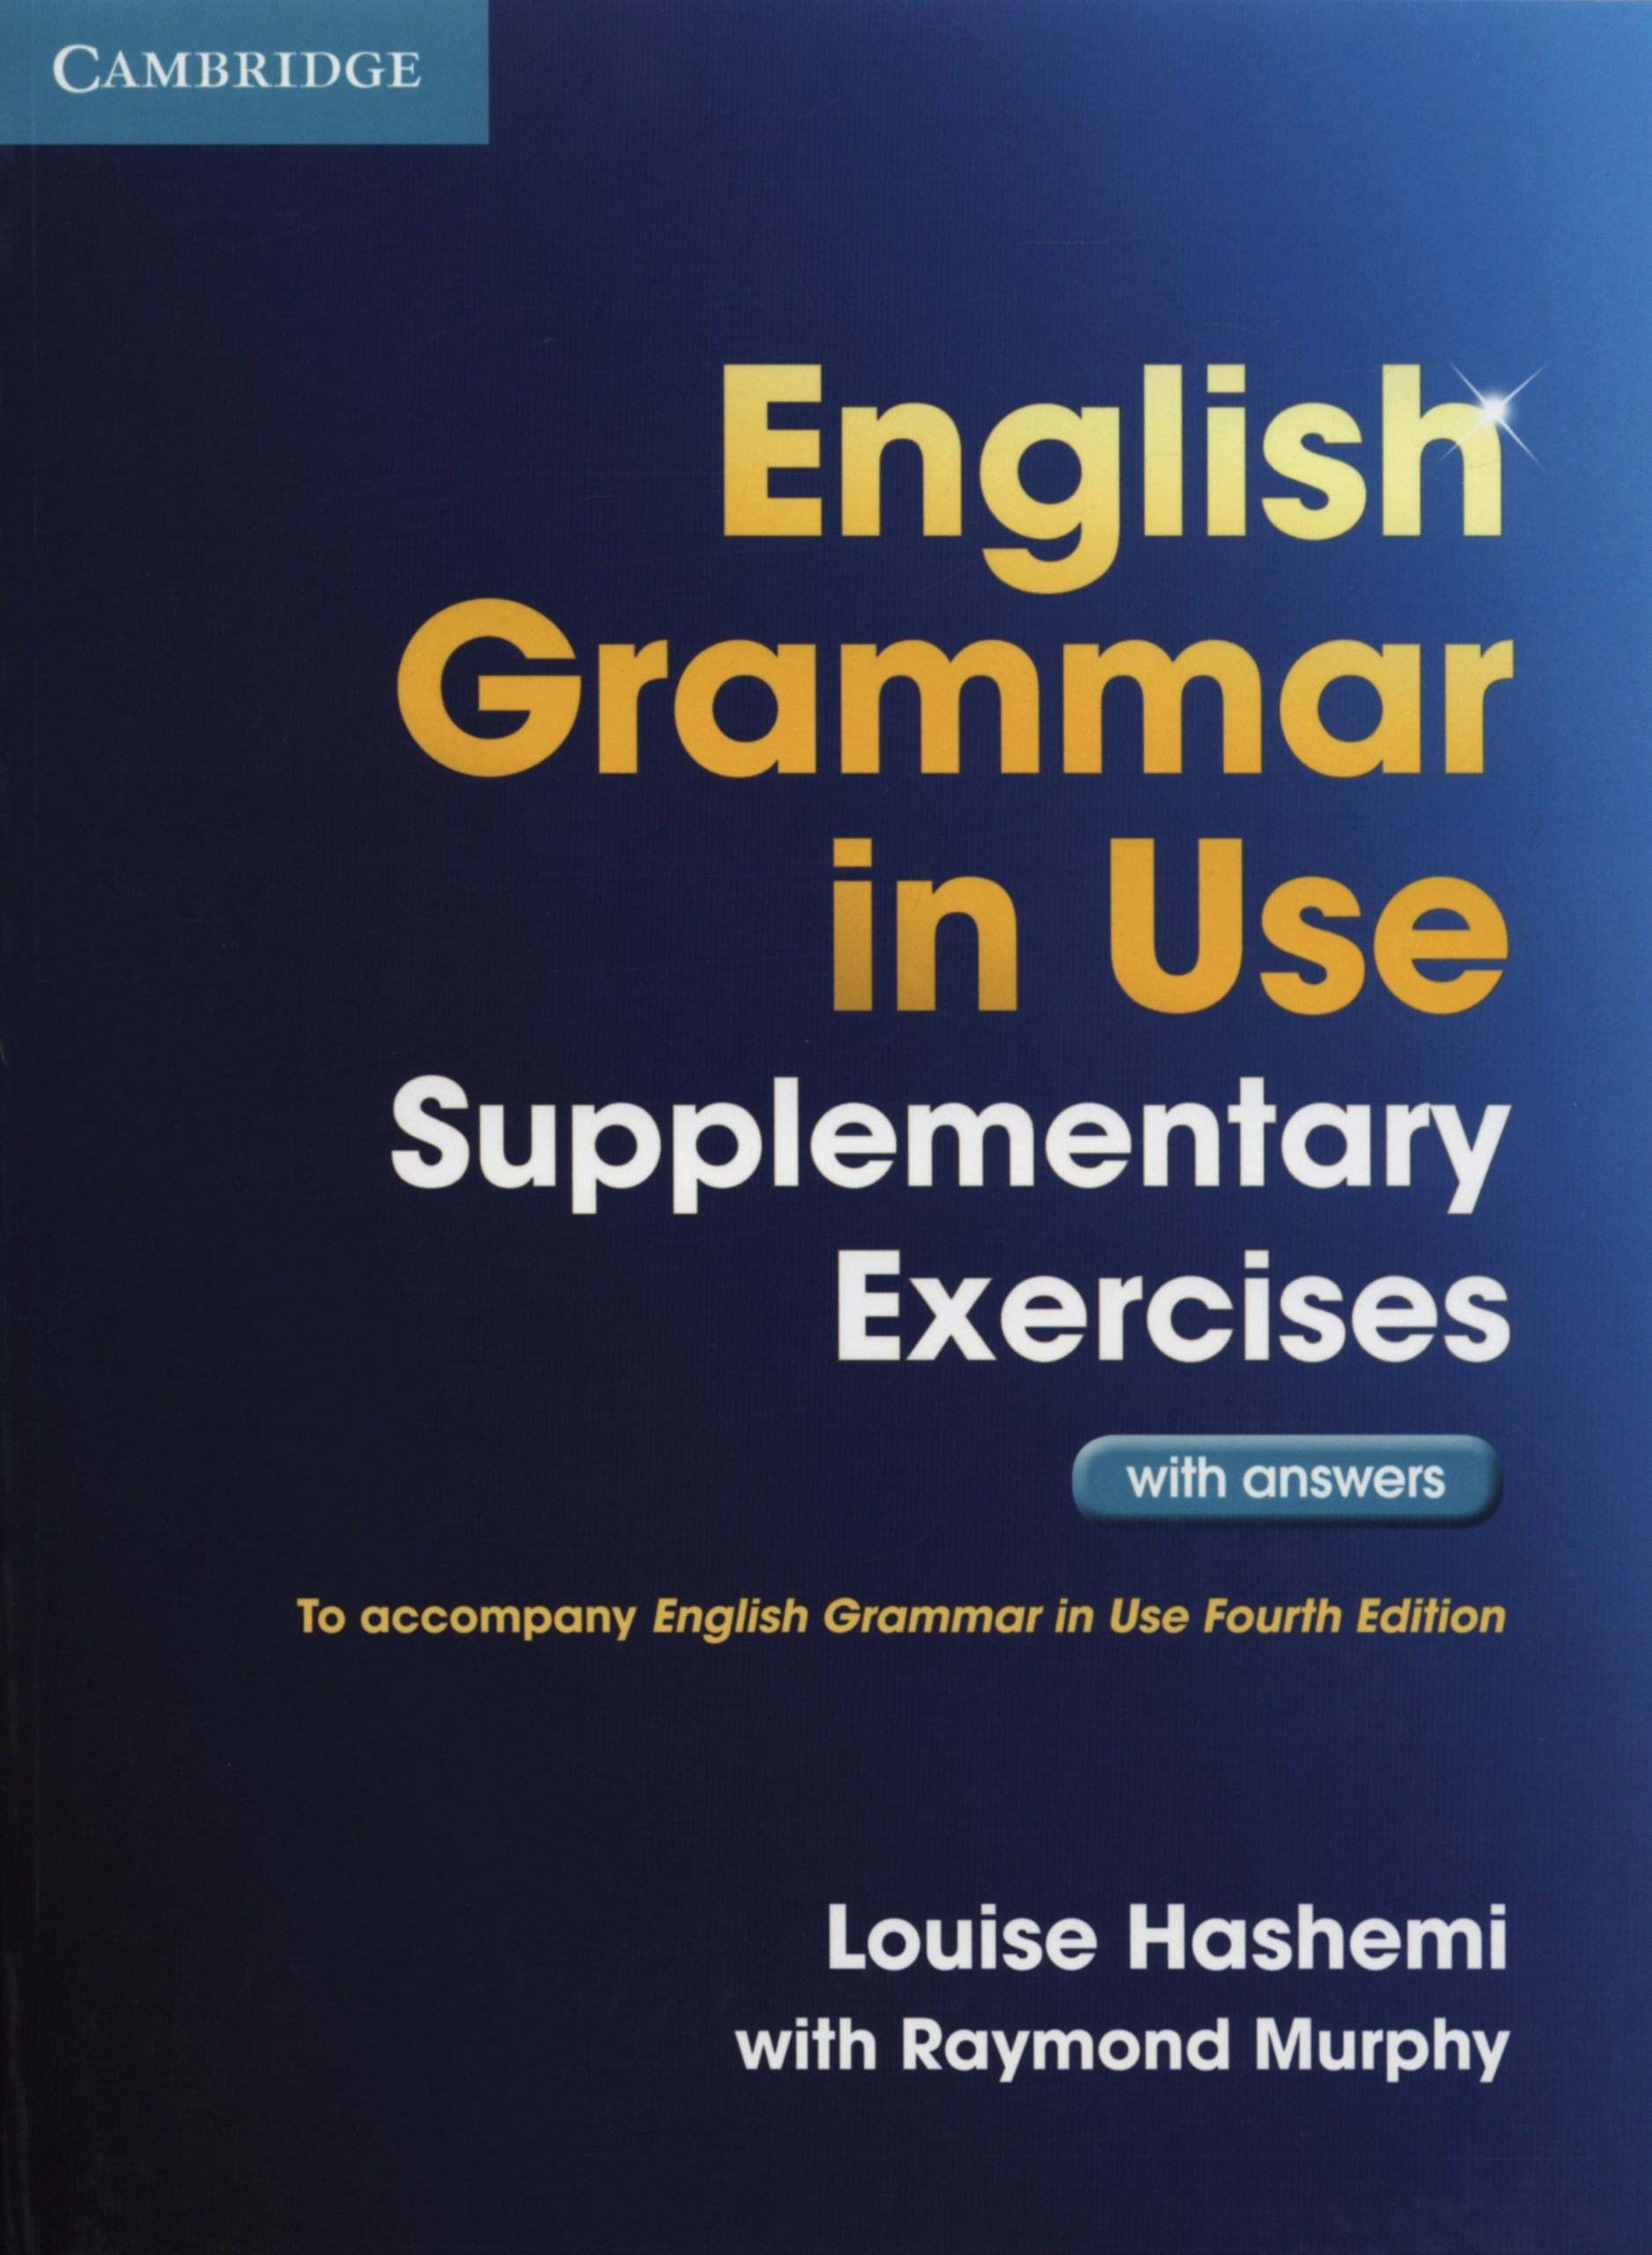 raymond murphy english grammar in use pdf free download